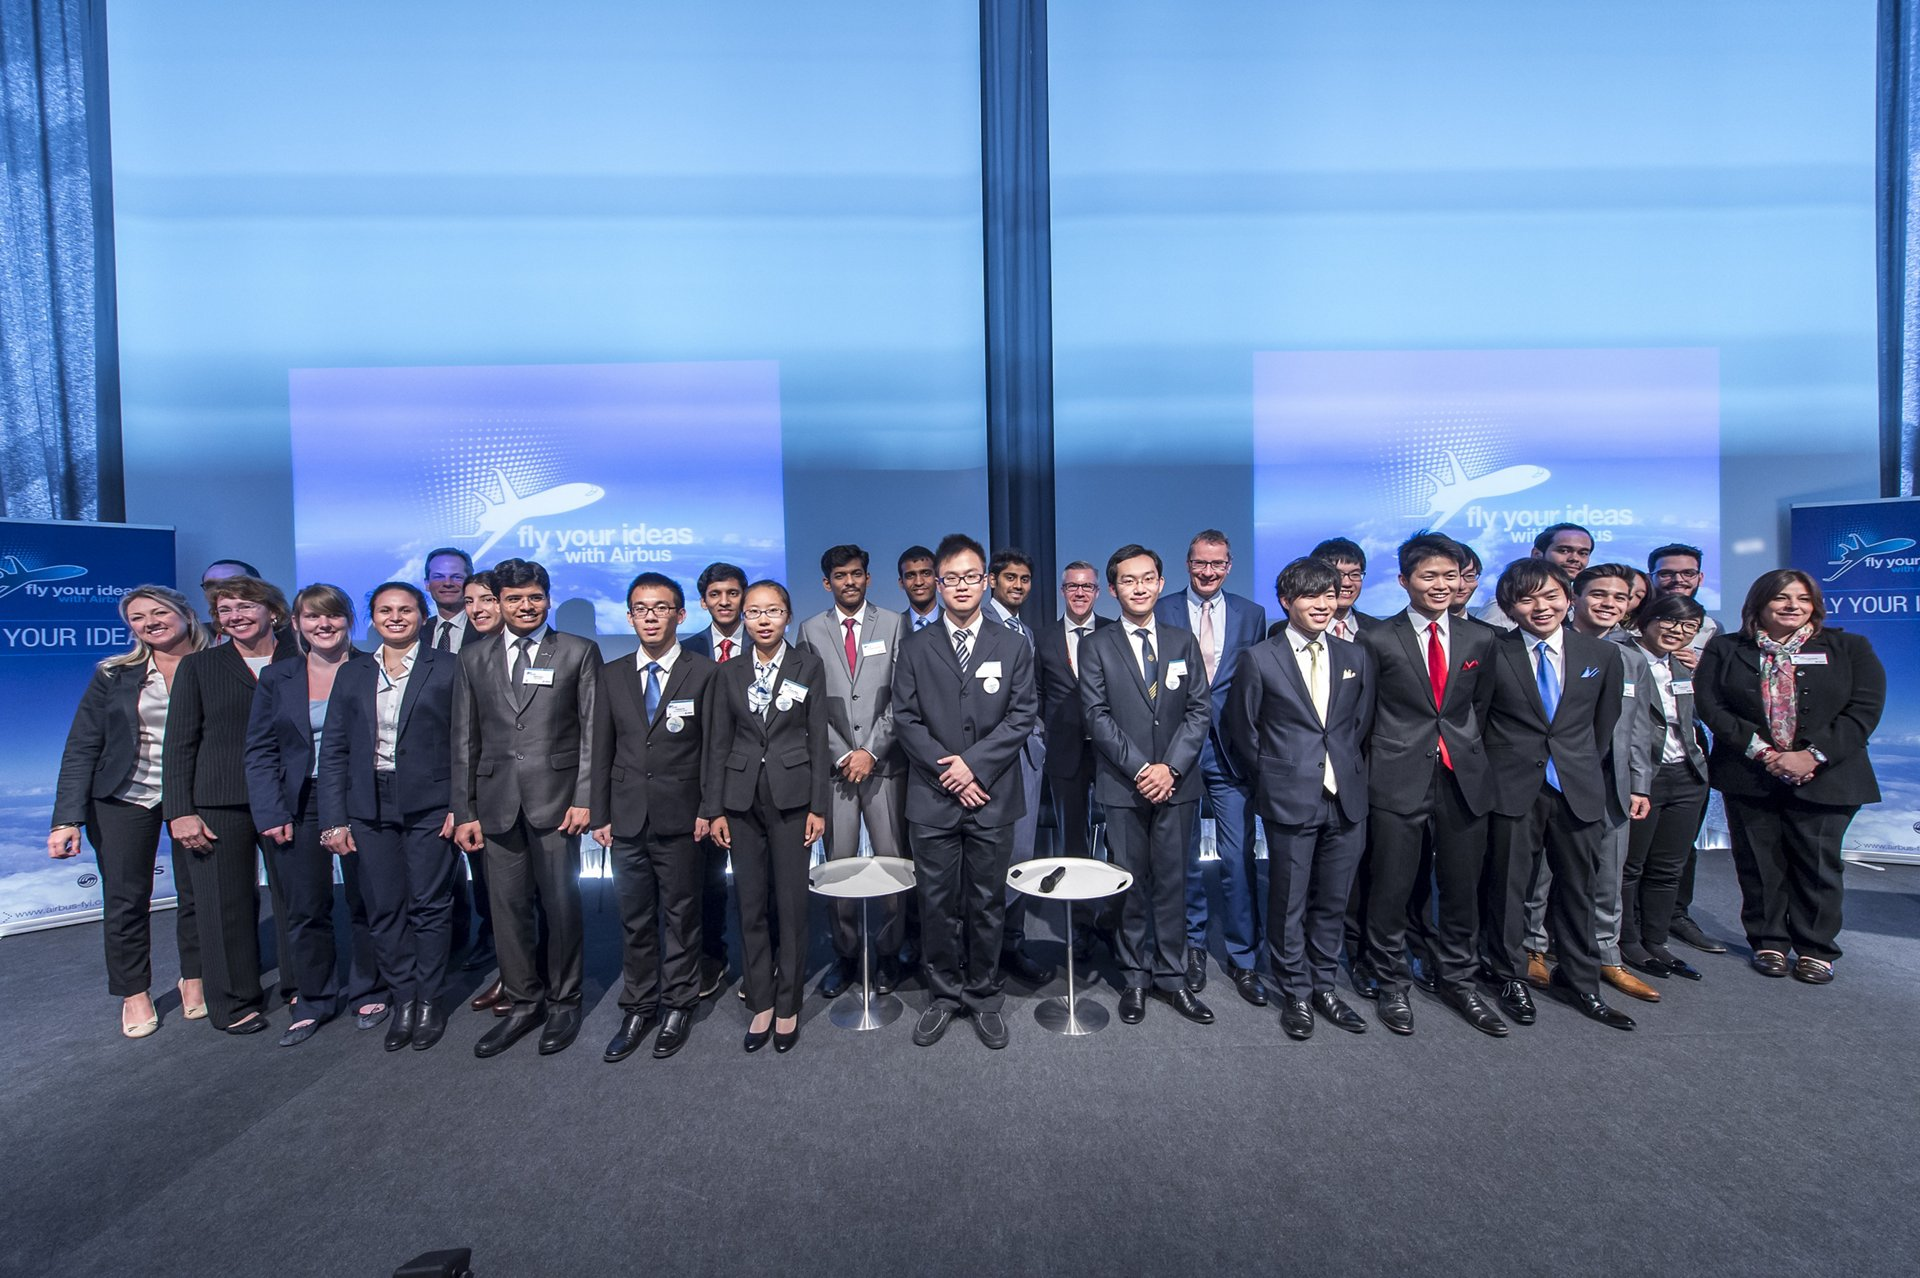 Airbus FYI 2015 event